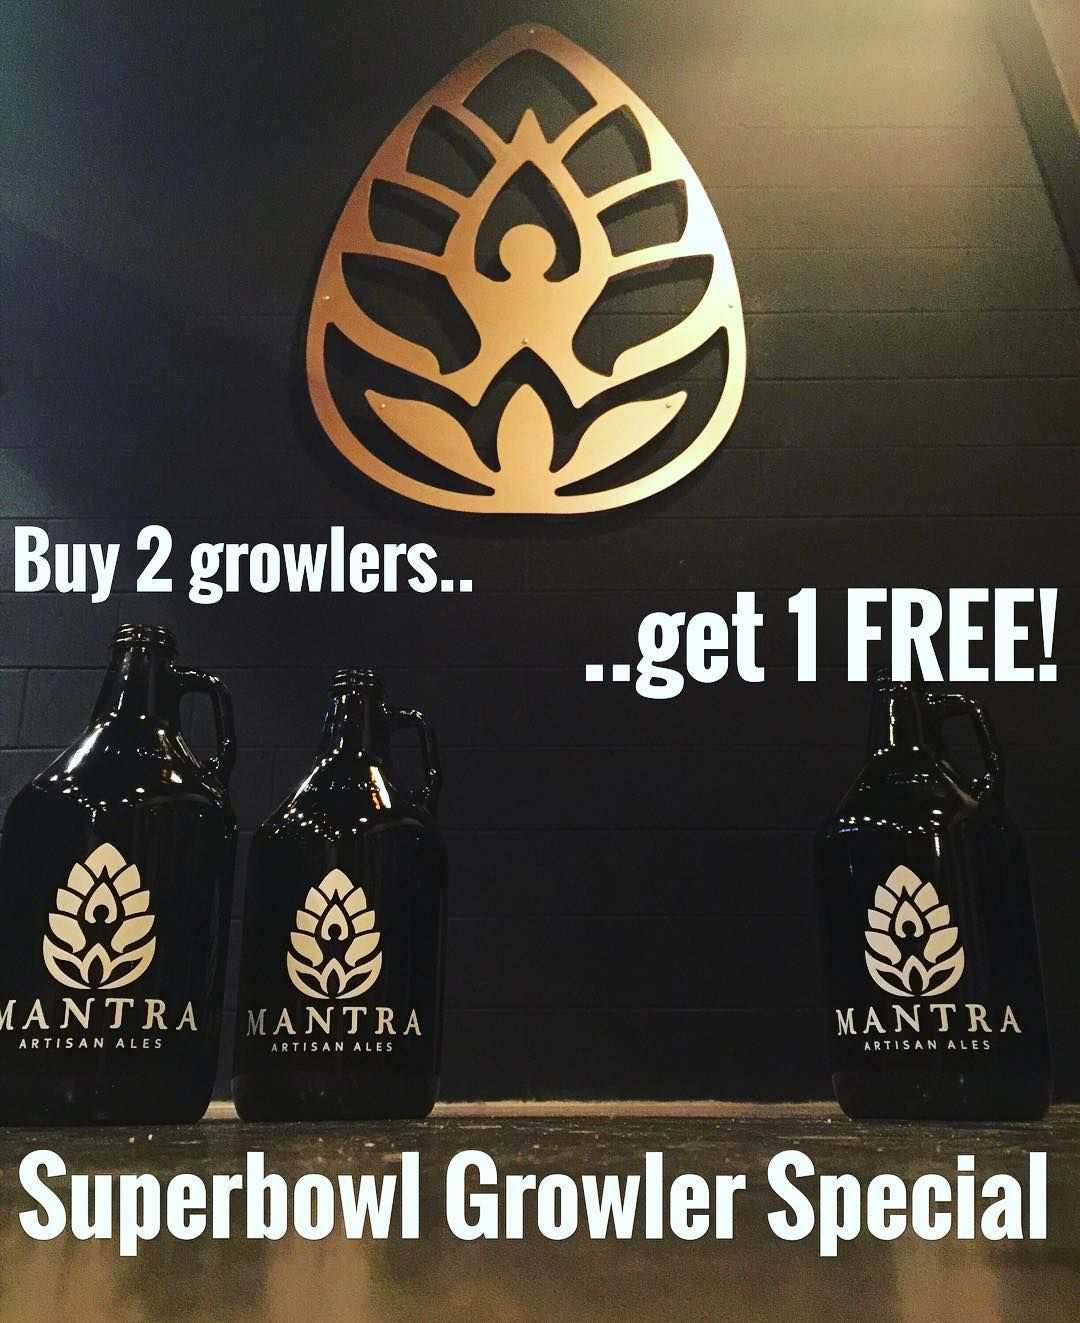 Spice up your #superbowl party!  ALL DAY GROWLER SALE! Buy 2 growlers fills get a third one FOR FREE! (must provide or purchase glassware) MANTRA TAPROOM OPEN 12p-6p today!